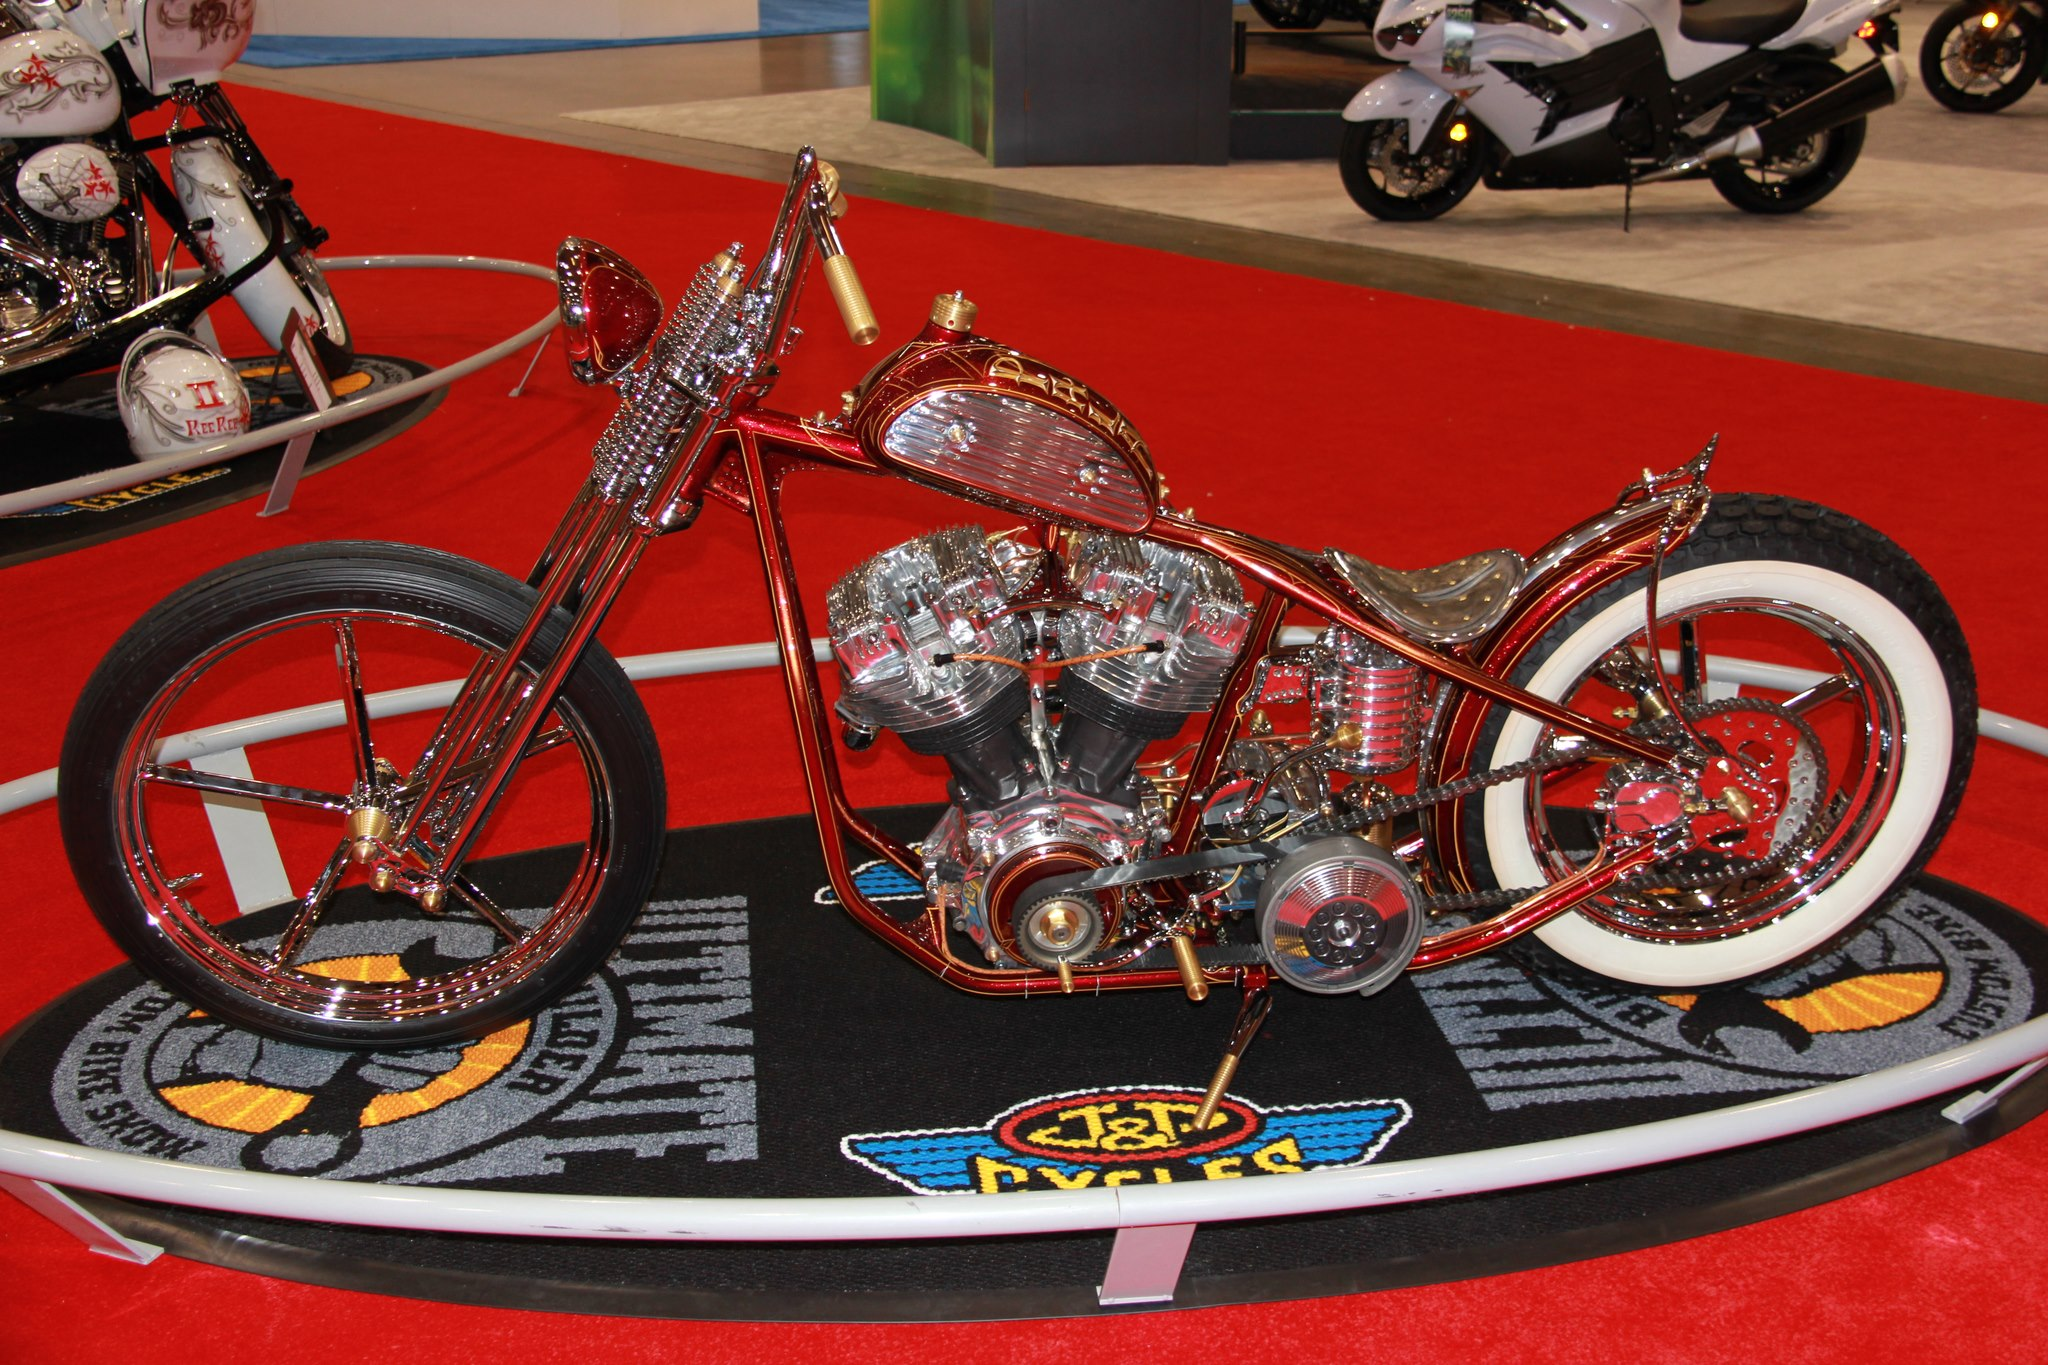 "Auto and Cycle Rick Bray's stunning entry in the Ultimate Builder Custom Bike Show in San Mateo, CA took the win in the Freestyle class. ""Pala Duro,"" (Spanish for Hard Shovel) features a Harley-Davidson 80 inch Shovelhead."